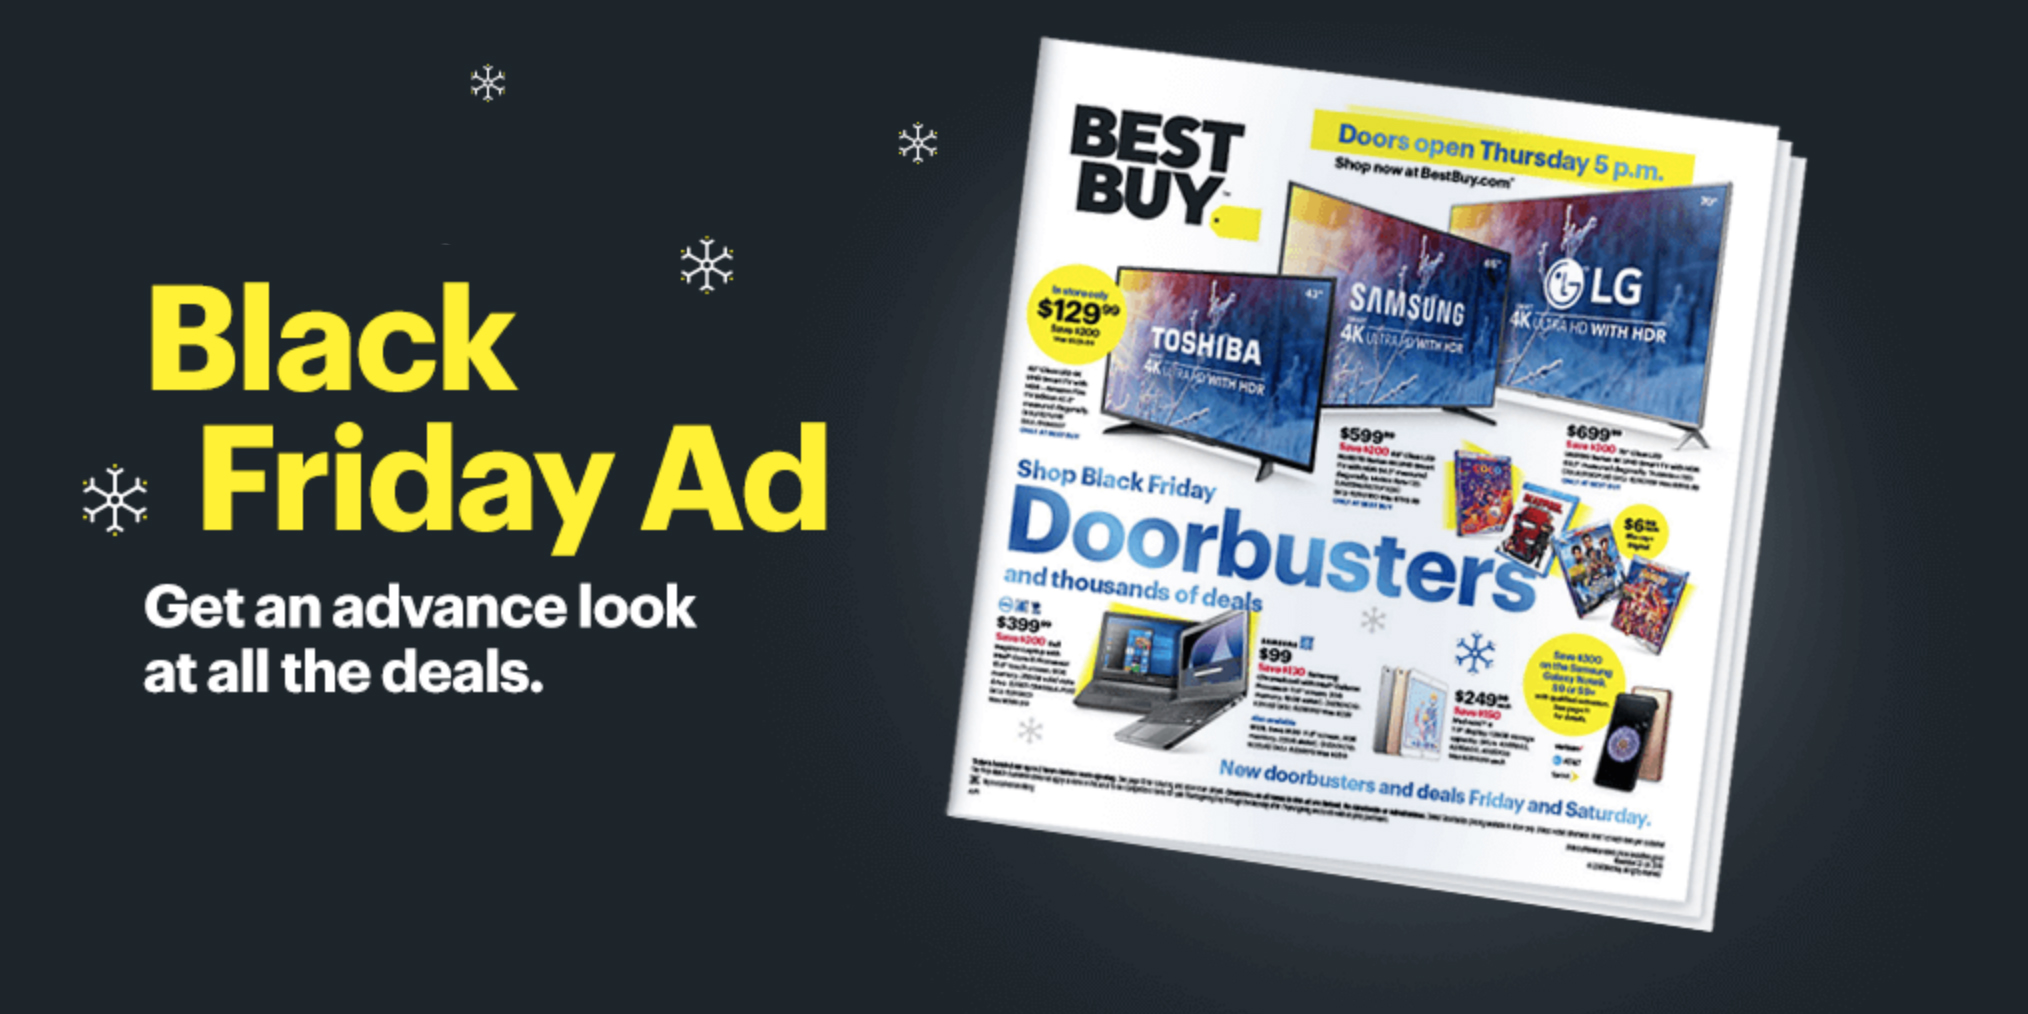 Best Buy Black Friday ad delivers this year's top Apple deals, gaming consoles, doorbusters, more